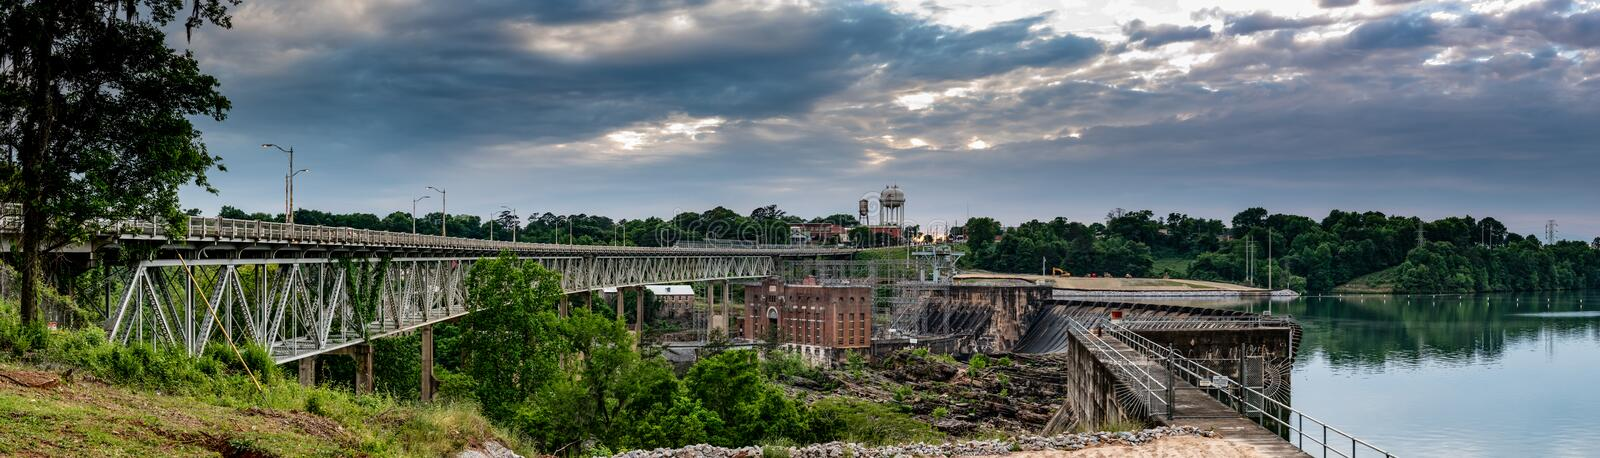 Tallassee, Alabama Panorama image. Tallassee, Alabama, USA - May 5, 2018: Panorama of the historical Thurlow Dam and the hydroelectric plant on the Tallapoosa royalty free stock photo